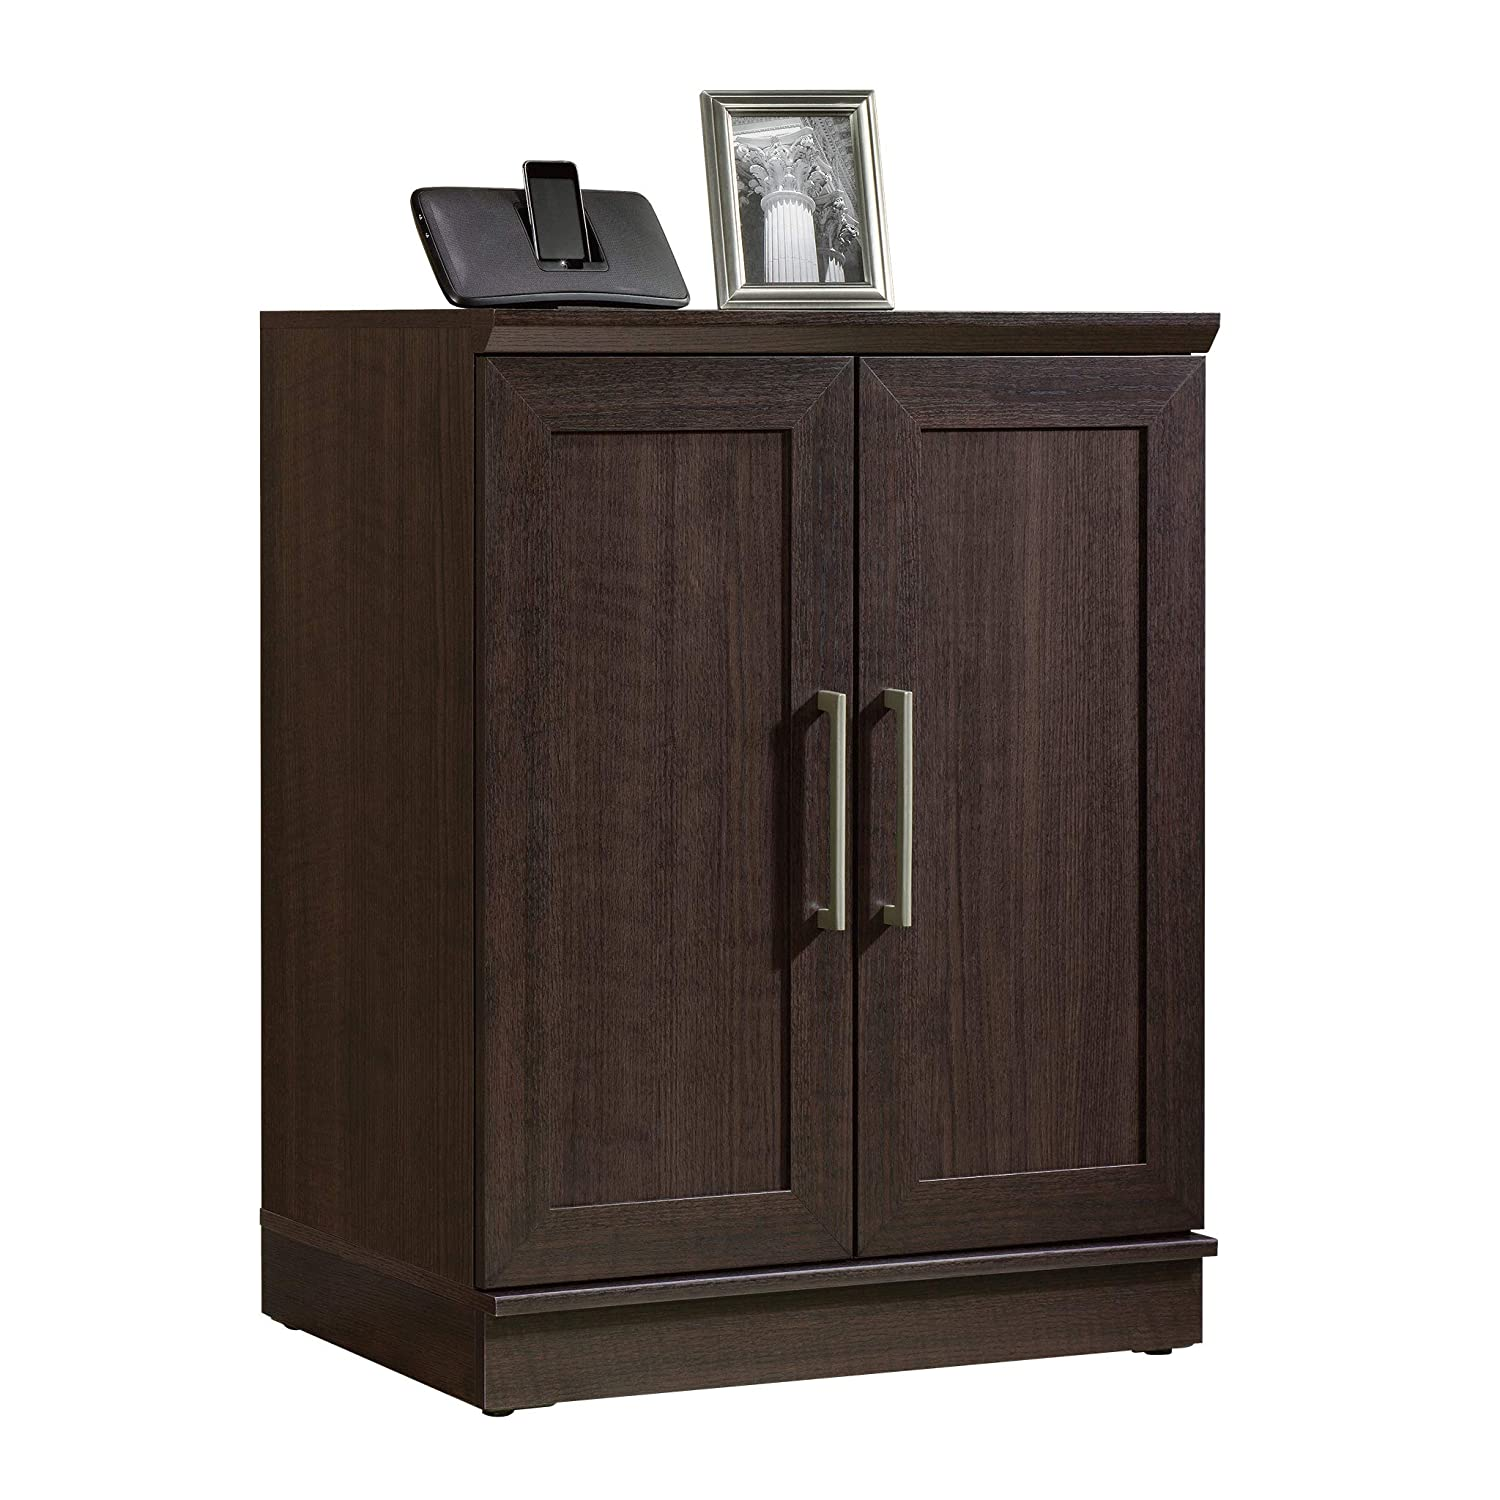 "Sauder 411591 Homeplus Base Cabinet, L: 29.61"" x W: 17.01"" x H: 37.40"", Dakota Oak finish"